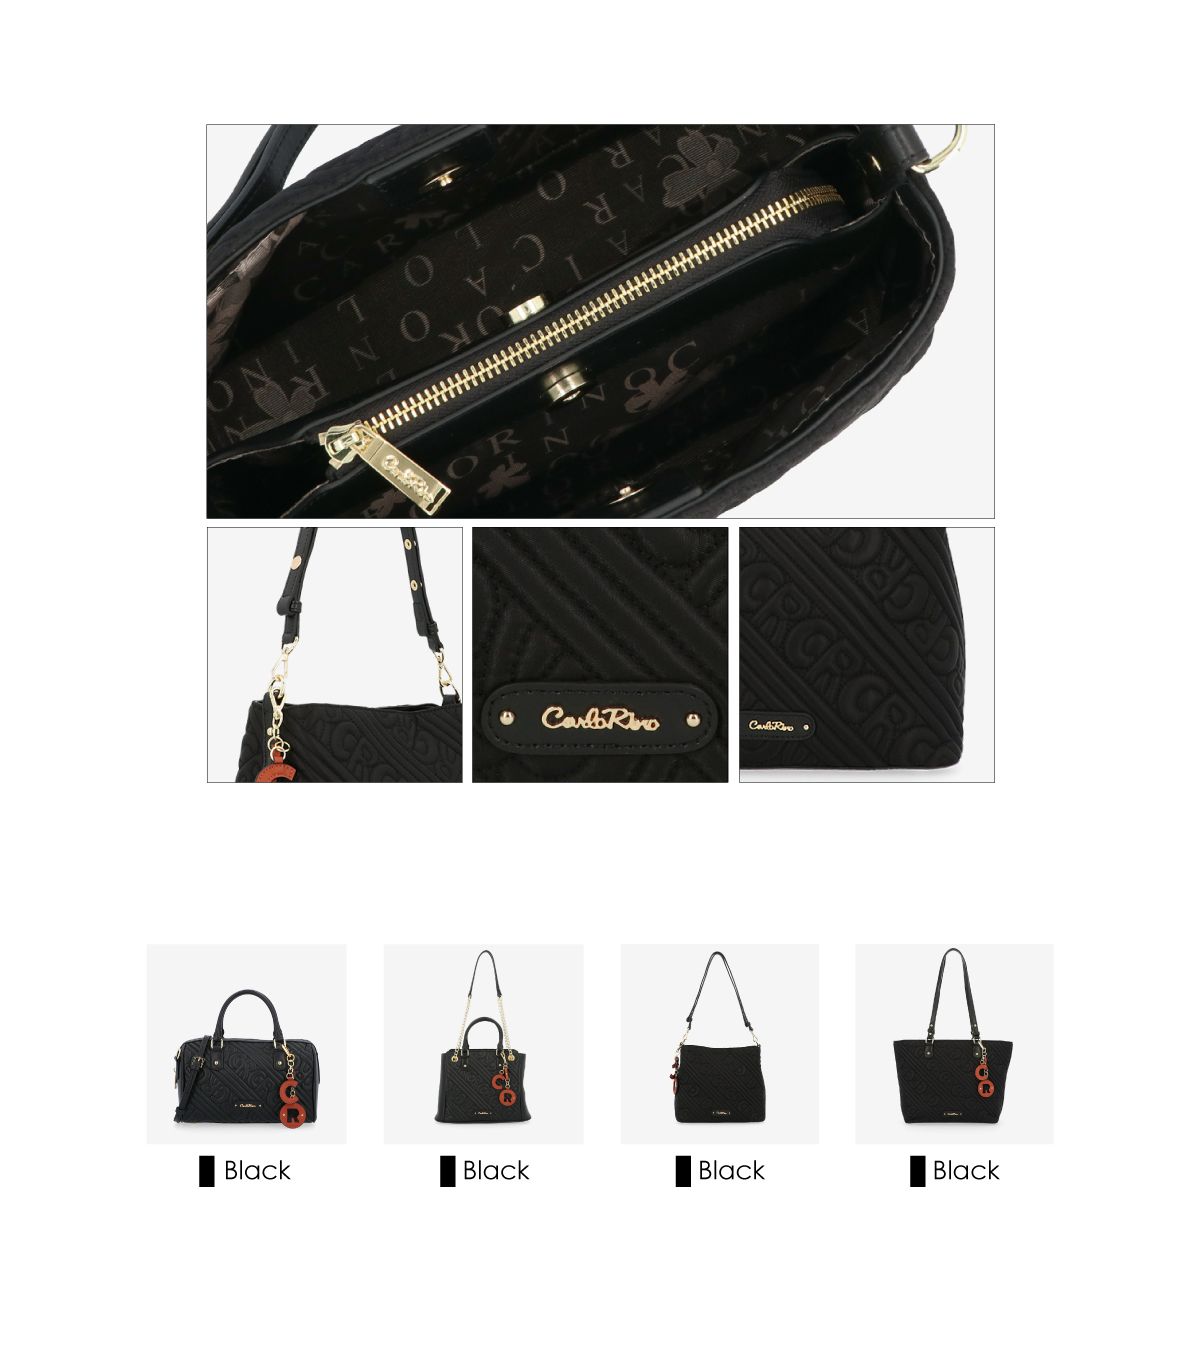 0305135J 003 3 - Dangerously Black Shoulder Bag